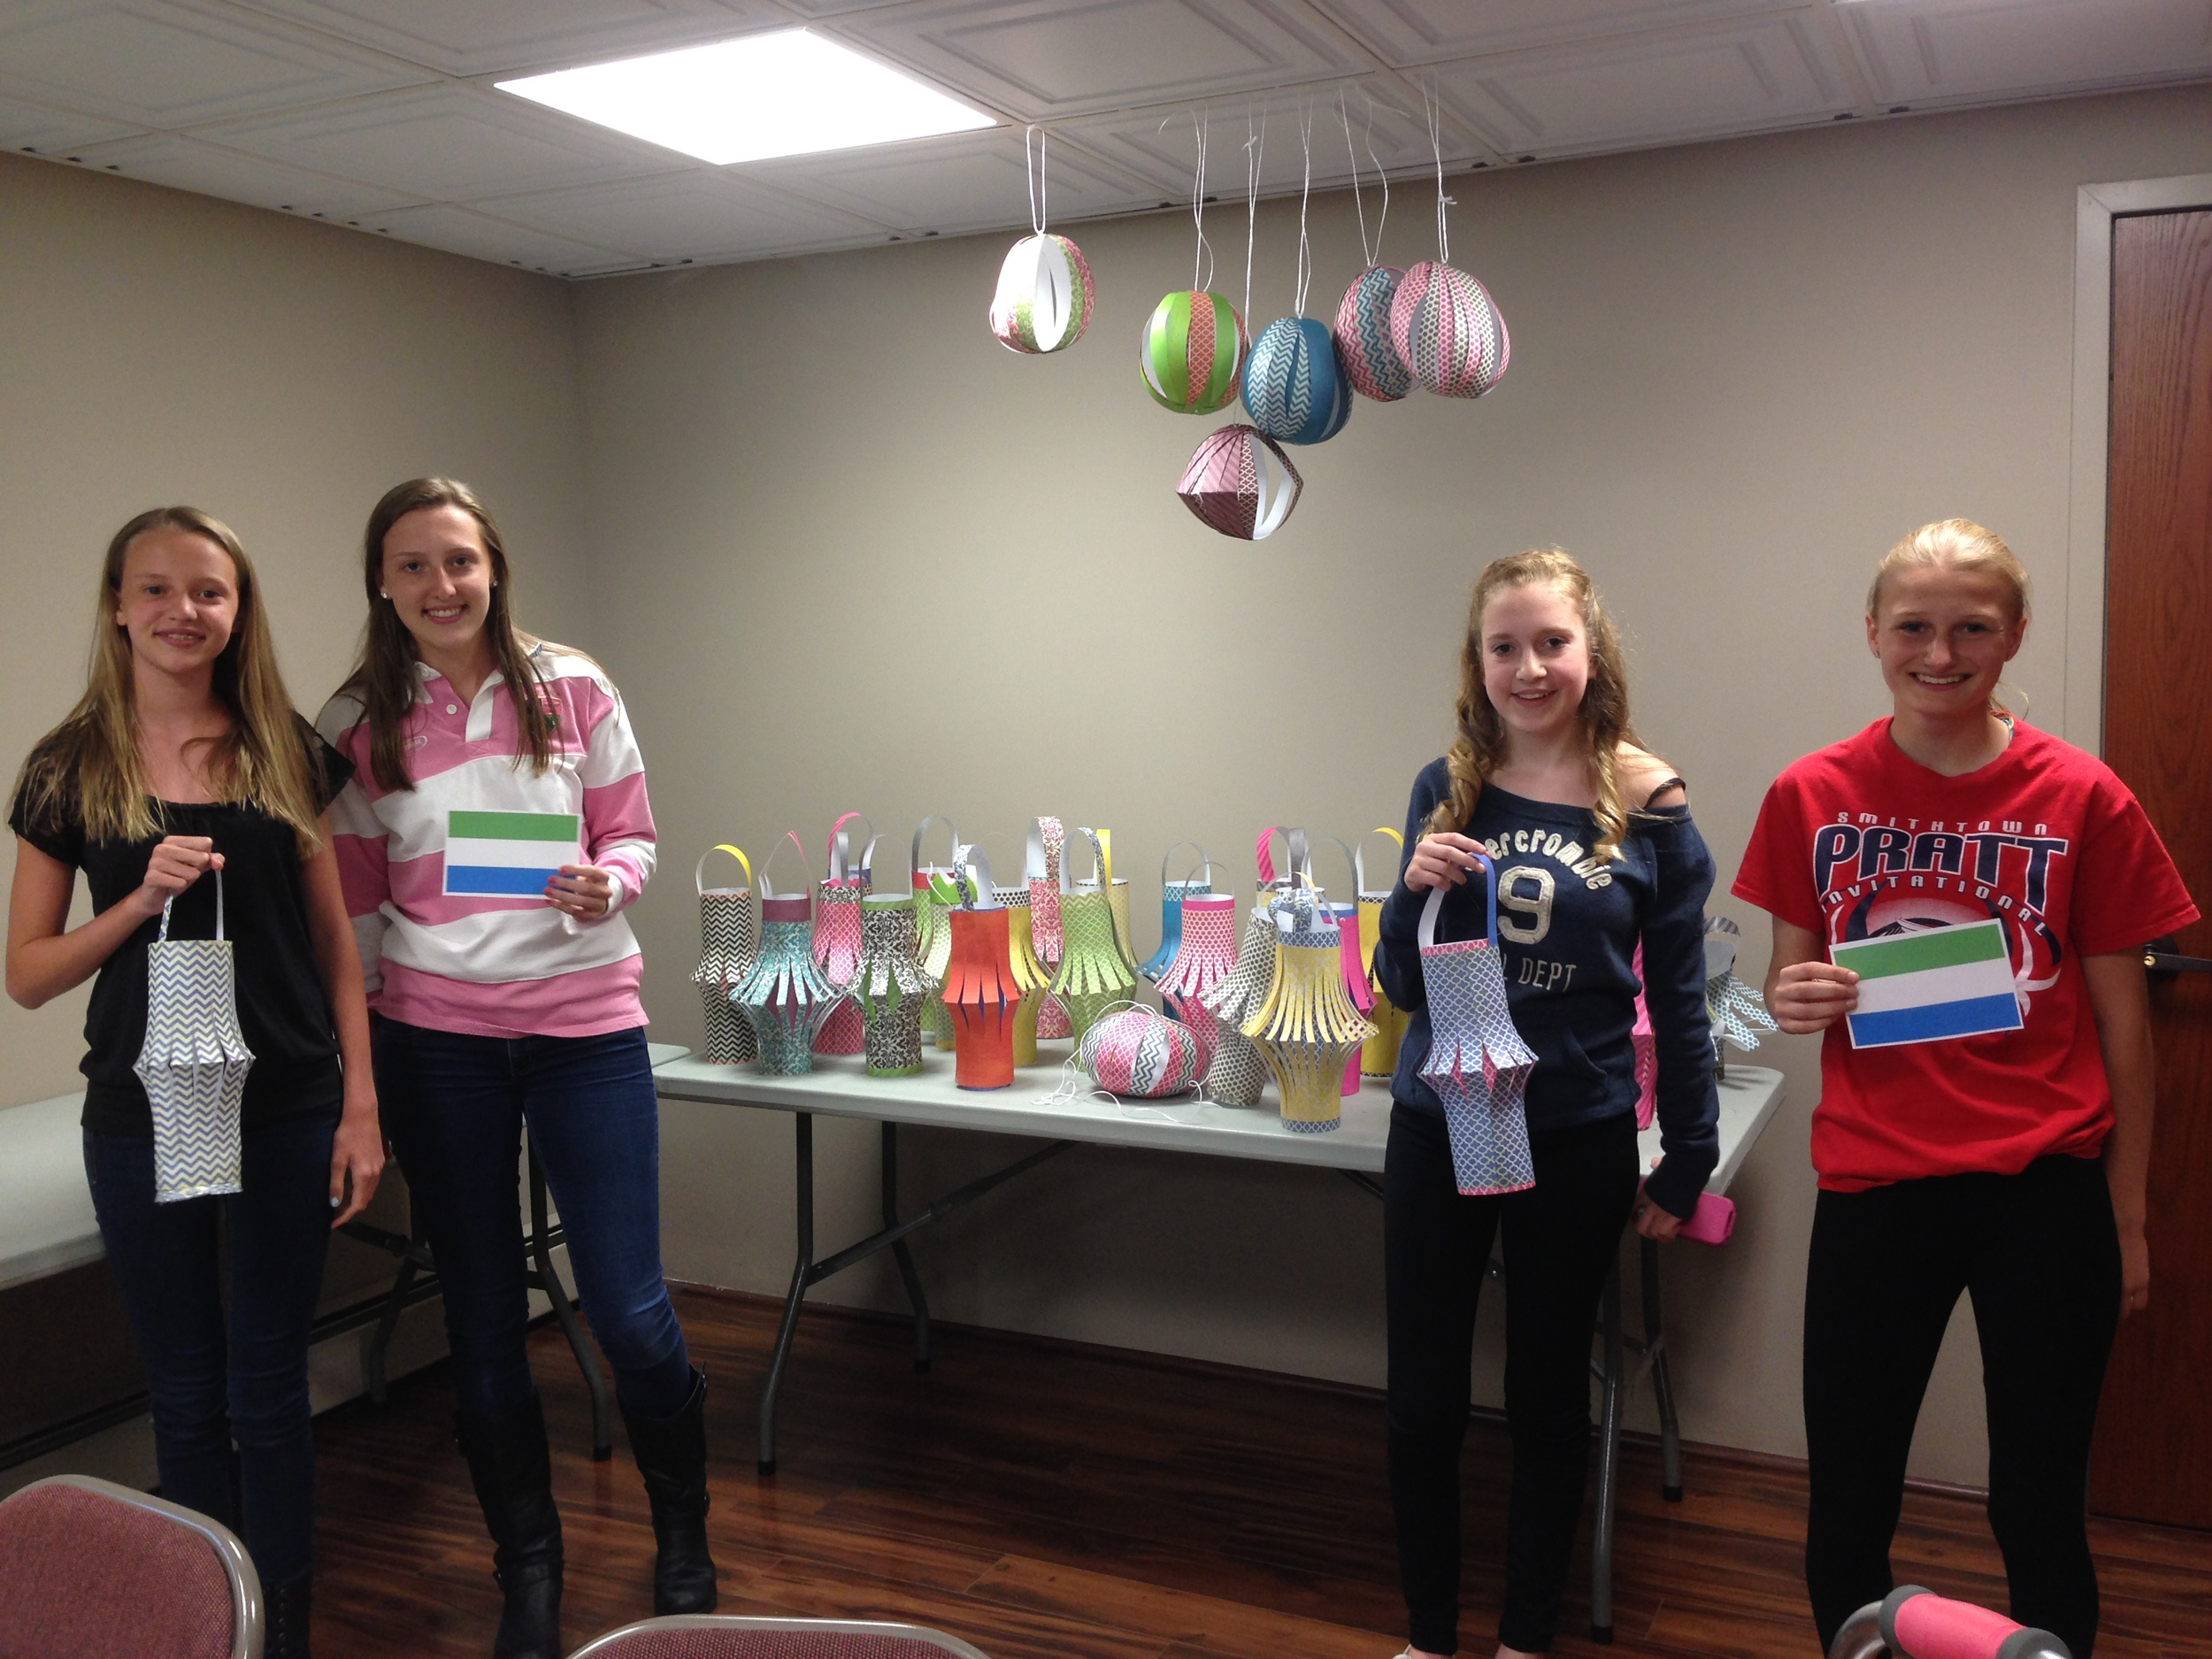 Young women from the USA create traditional paper lanterns for the people of Sierra Leone and hang them outside on Sierra Leone's independence day (April 27).